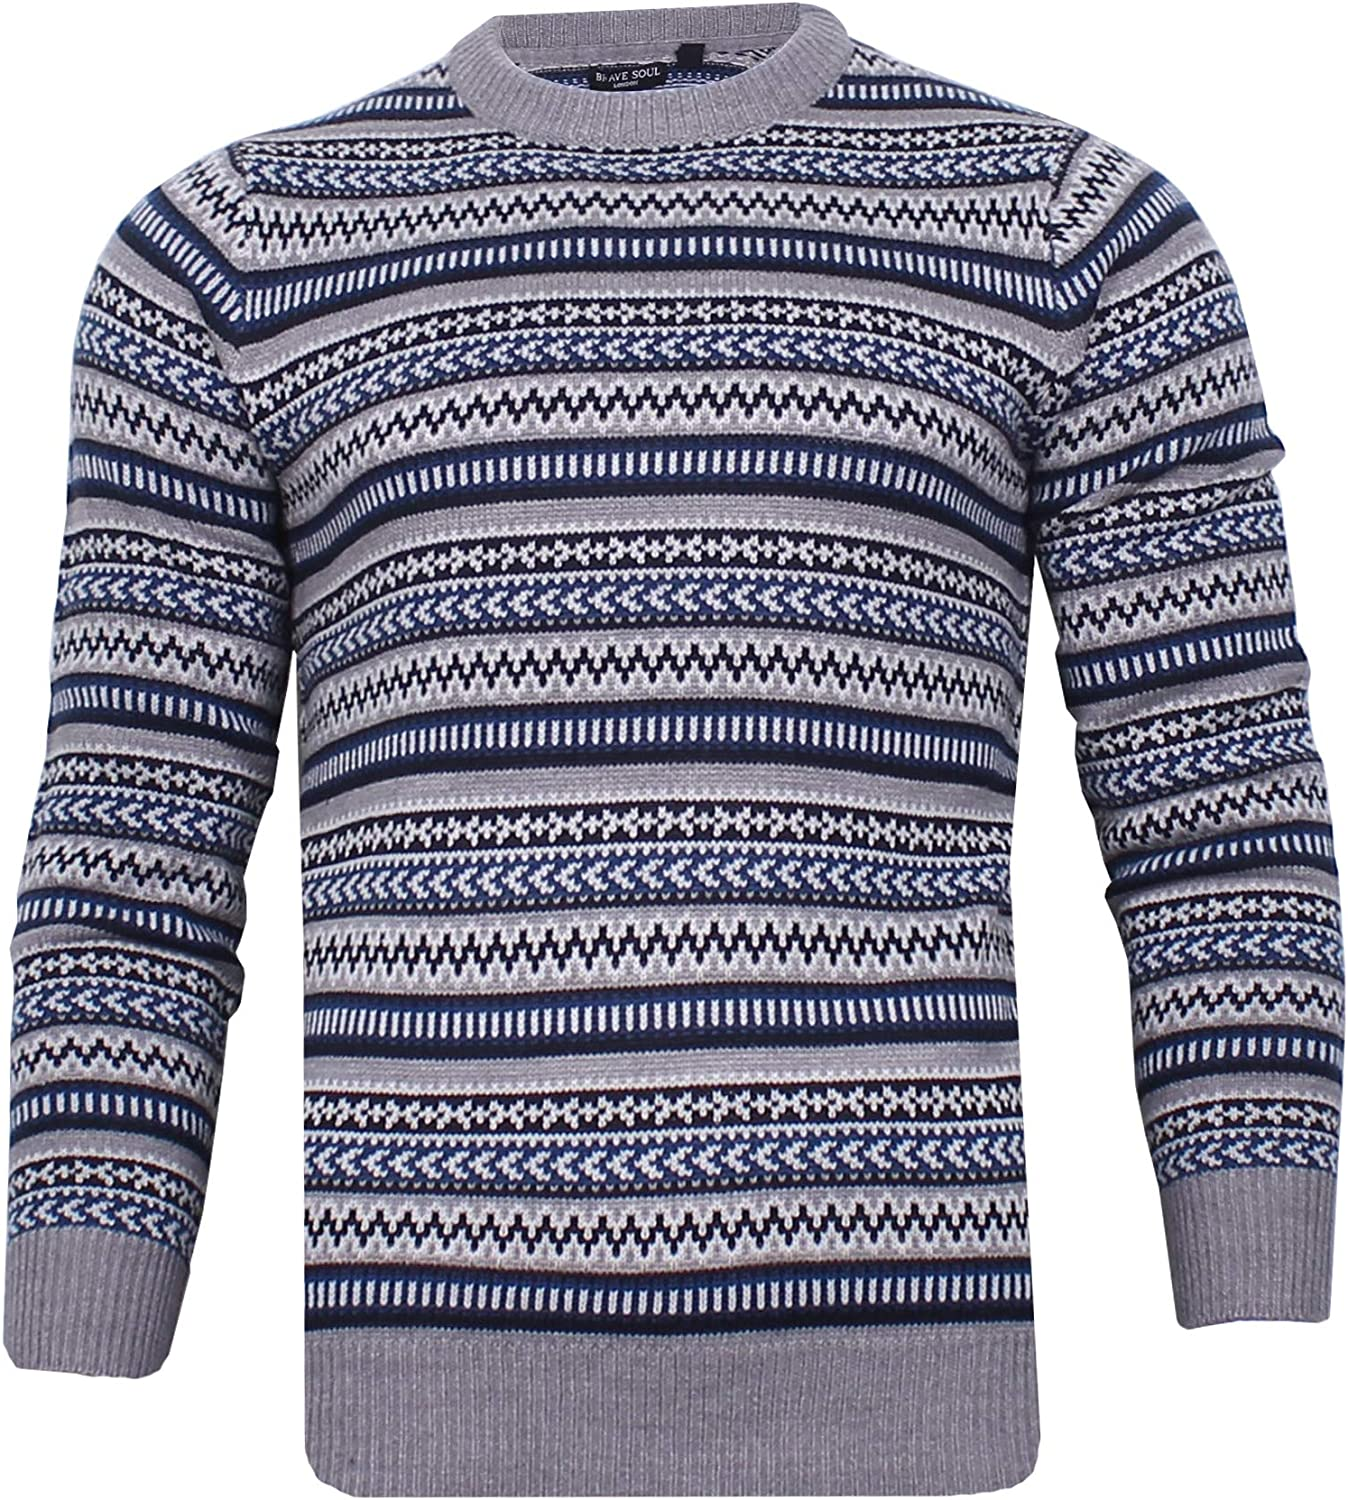 Men's Vintage Sweaters, Retro Jumpers 1920s to 1980s BRAVE SOUL Mens Knitted Fairisle Jumper Christmas Crew Neck Winter Knitwear £17.99 AT vintagedancer.com